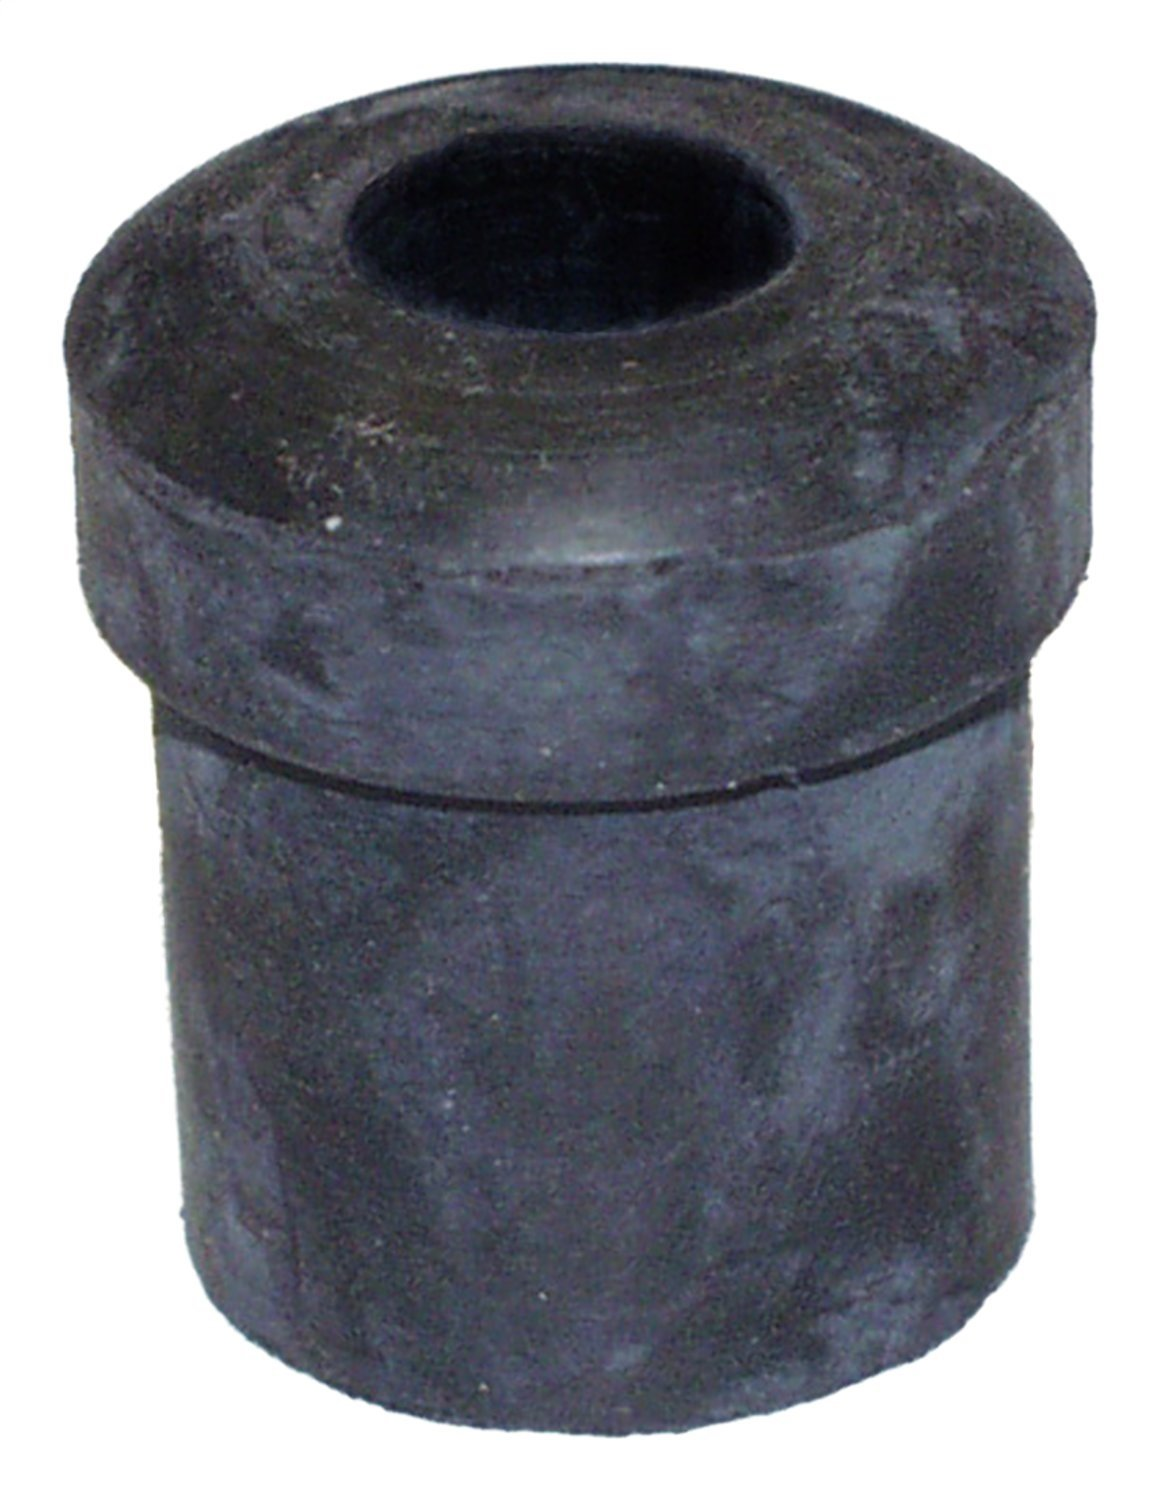 Spring Bushing 1948-1950 VJ Jeepster Front Shackle Bushing; 4 Required Per Vehicle J0648594 Crown Automotive